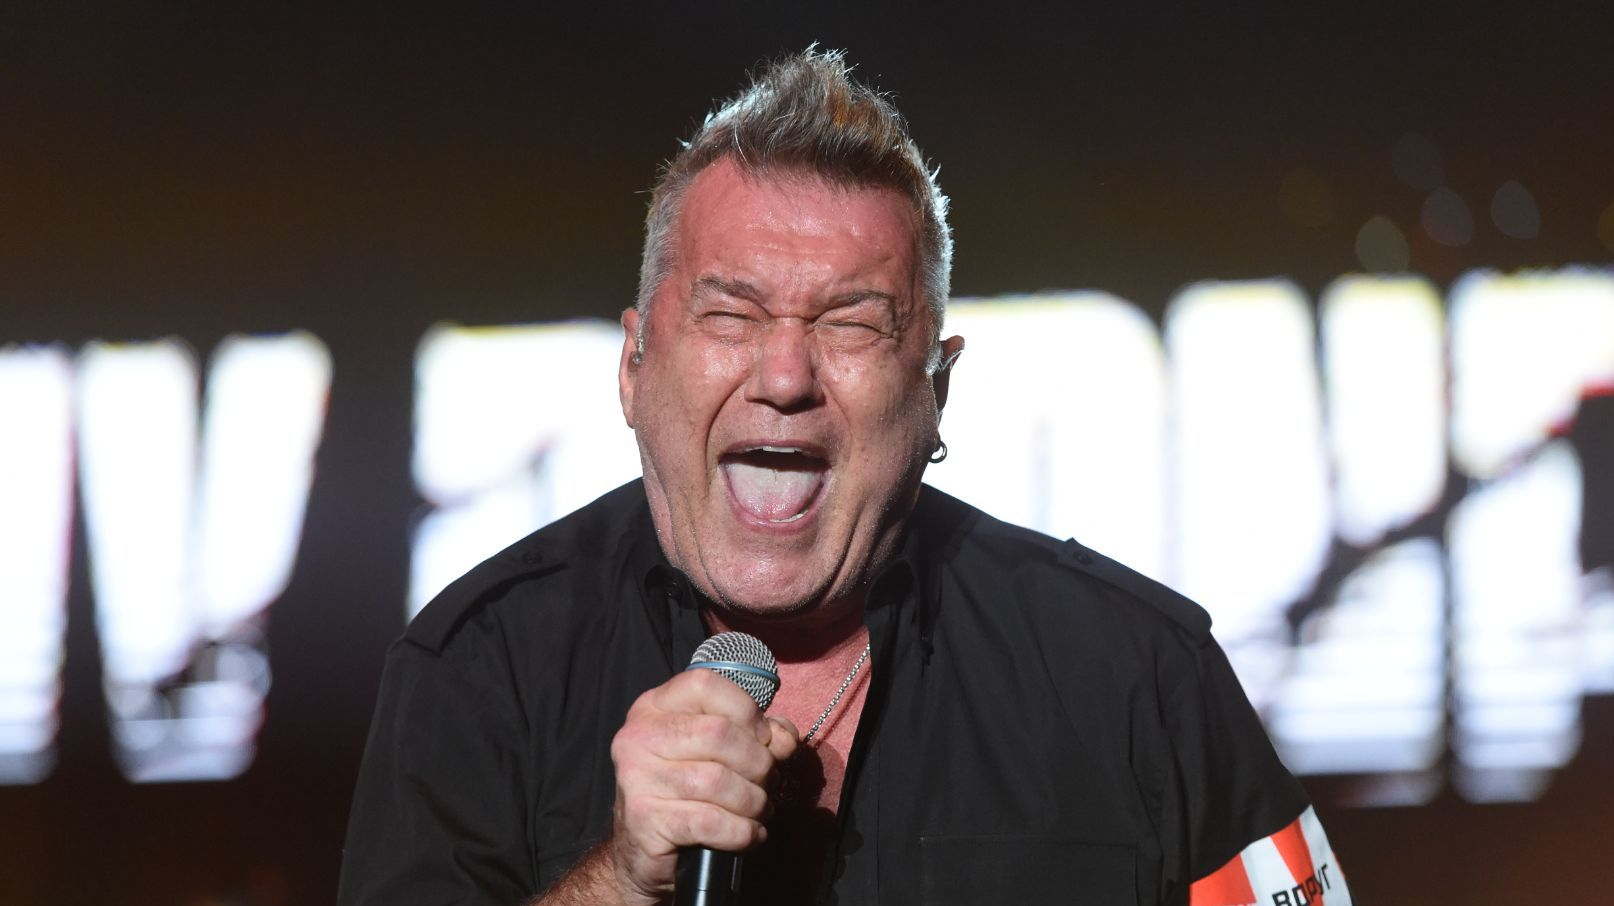 Rock legend Jimmy Barnes is on stage at By the C.